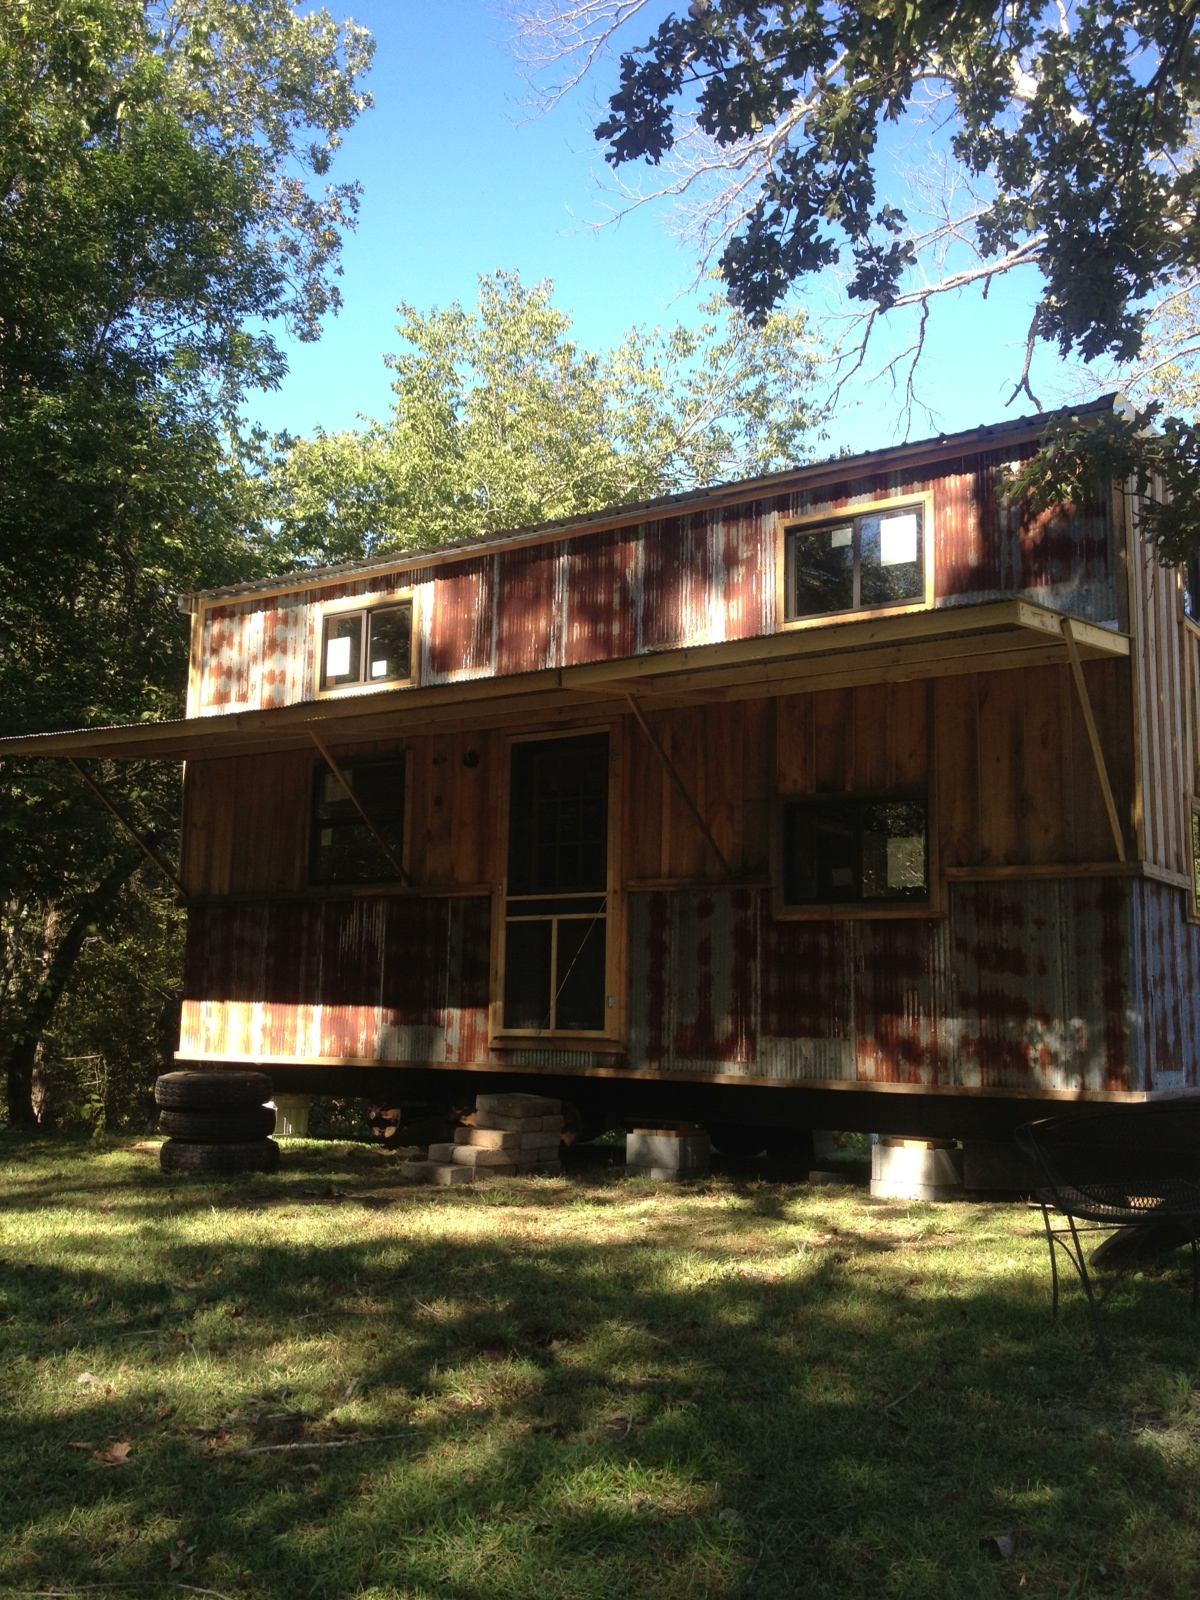 Cherae Stone's 240 square-foot house, made of Arkansas pine and corrugated tin, took just six months to construct.